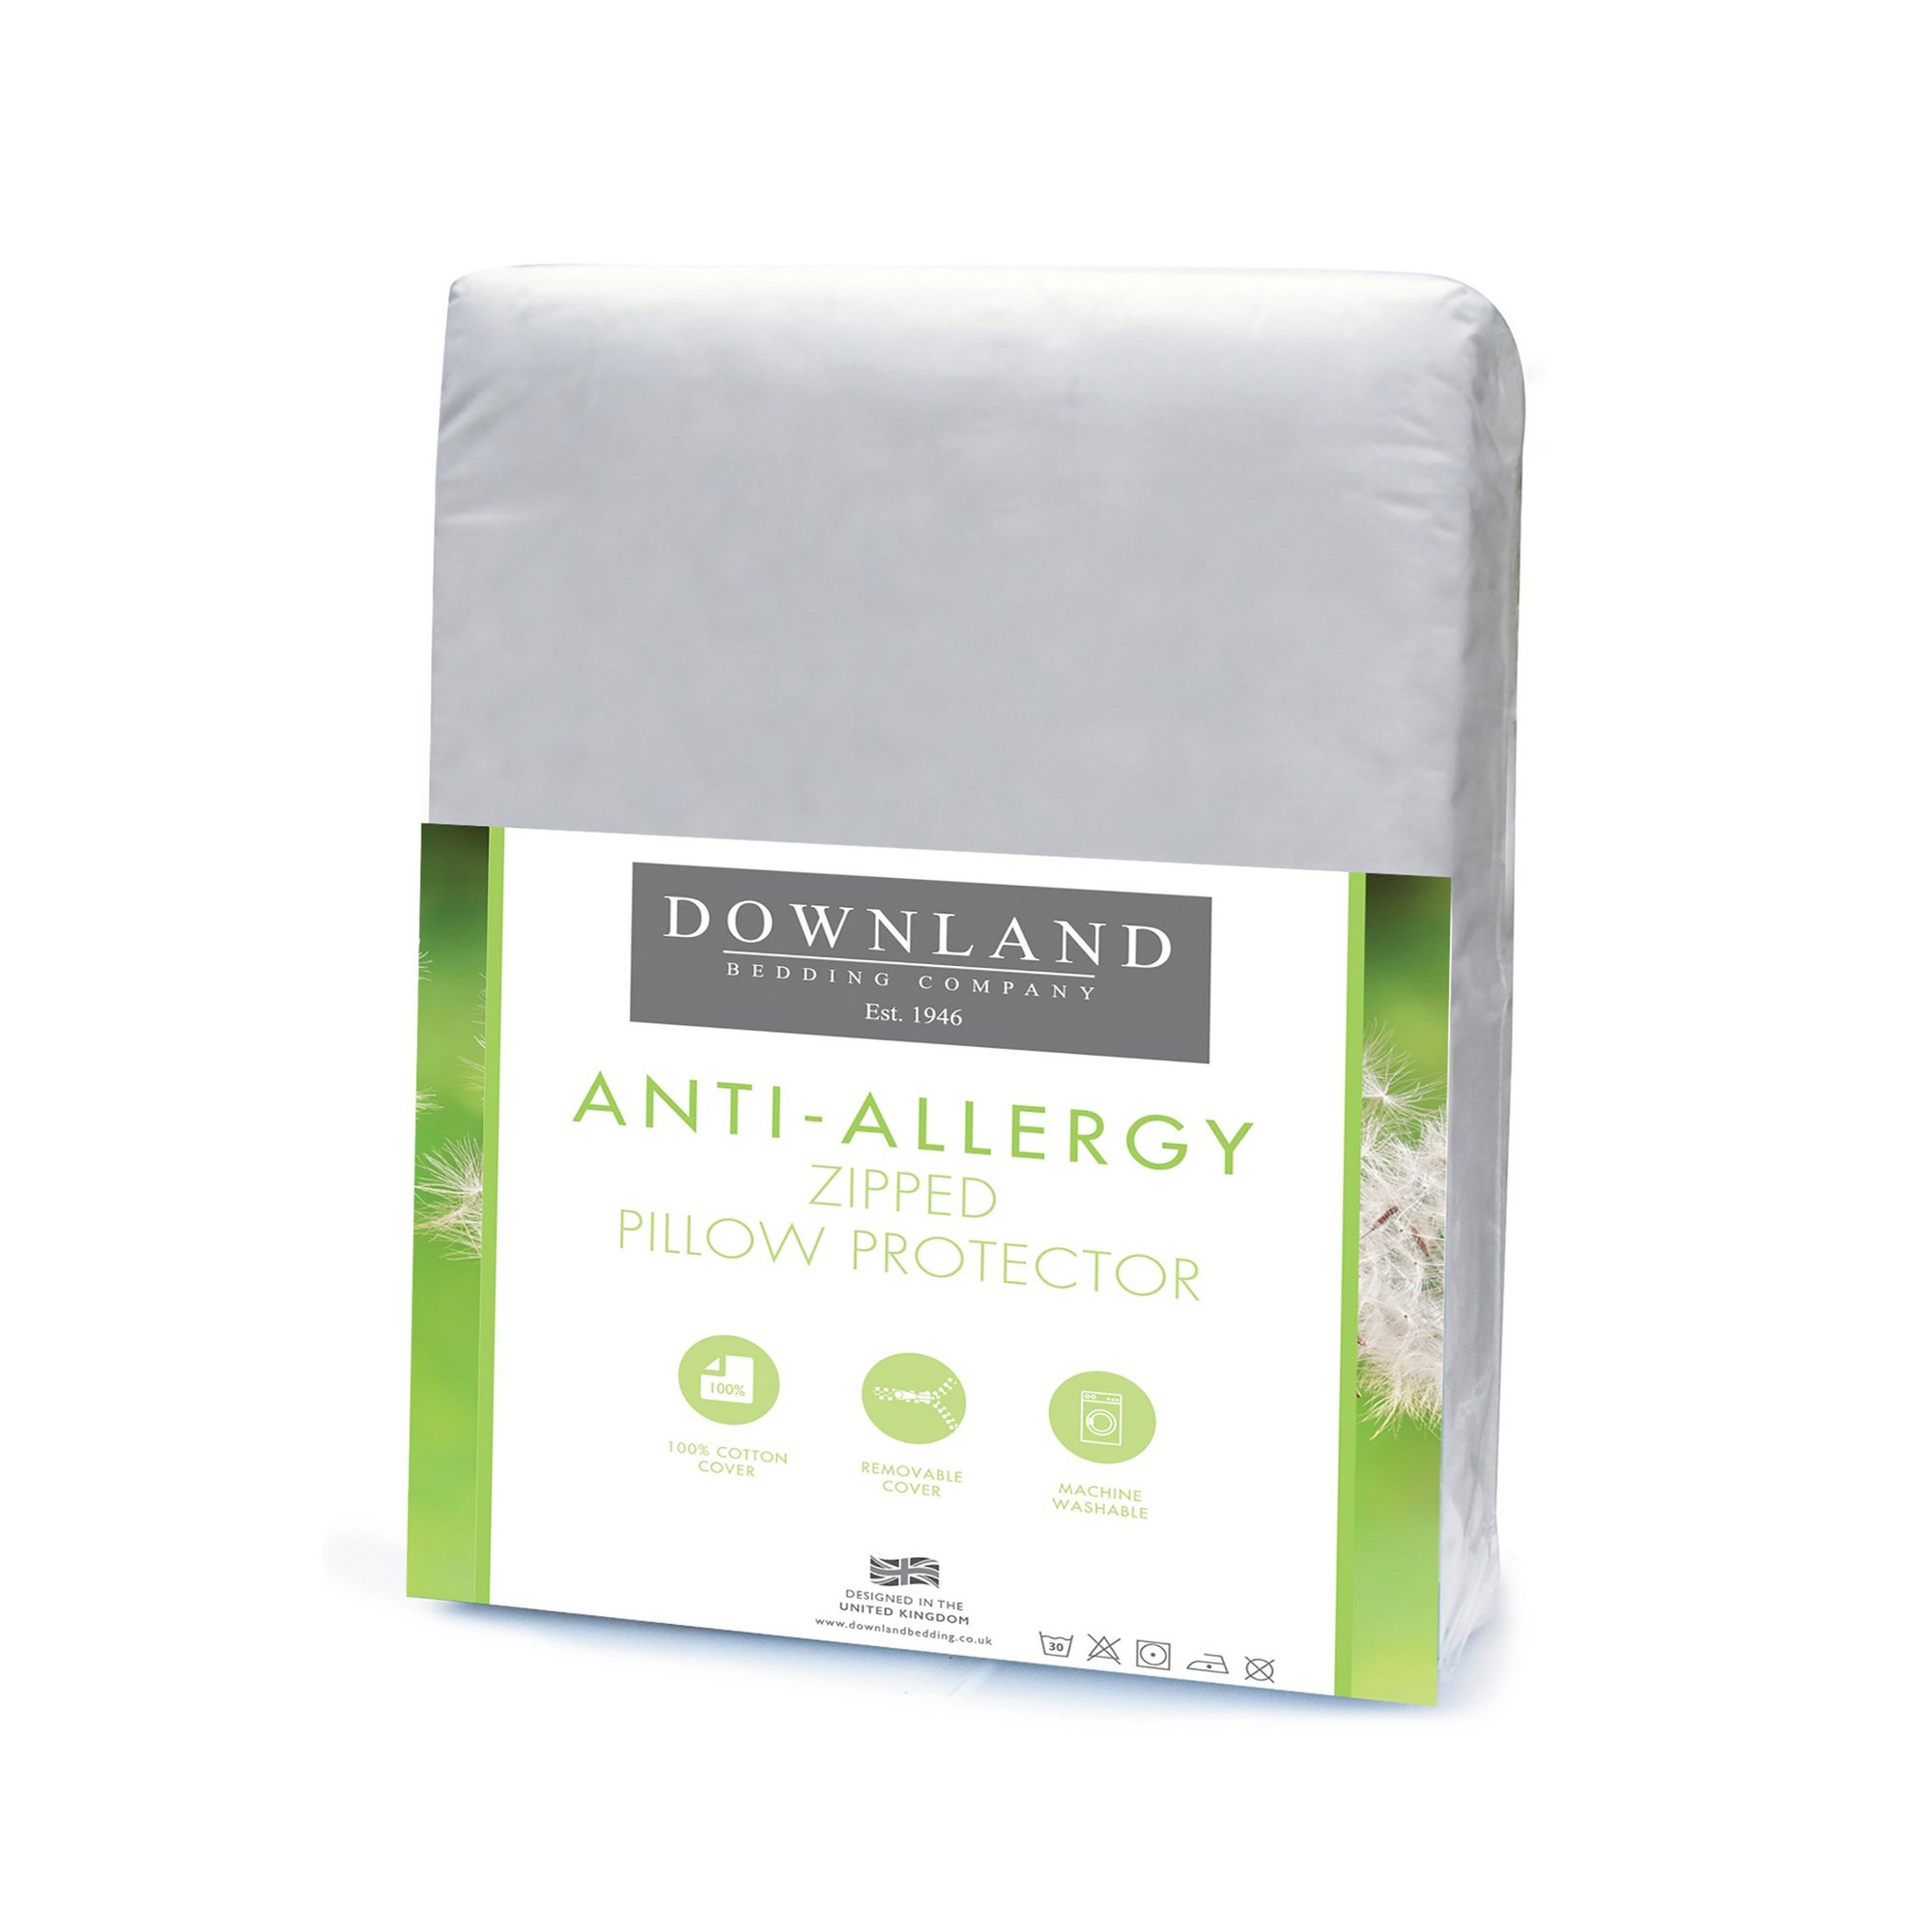 Image of Downland Zipped Anti-Allergy Pillow Protector